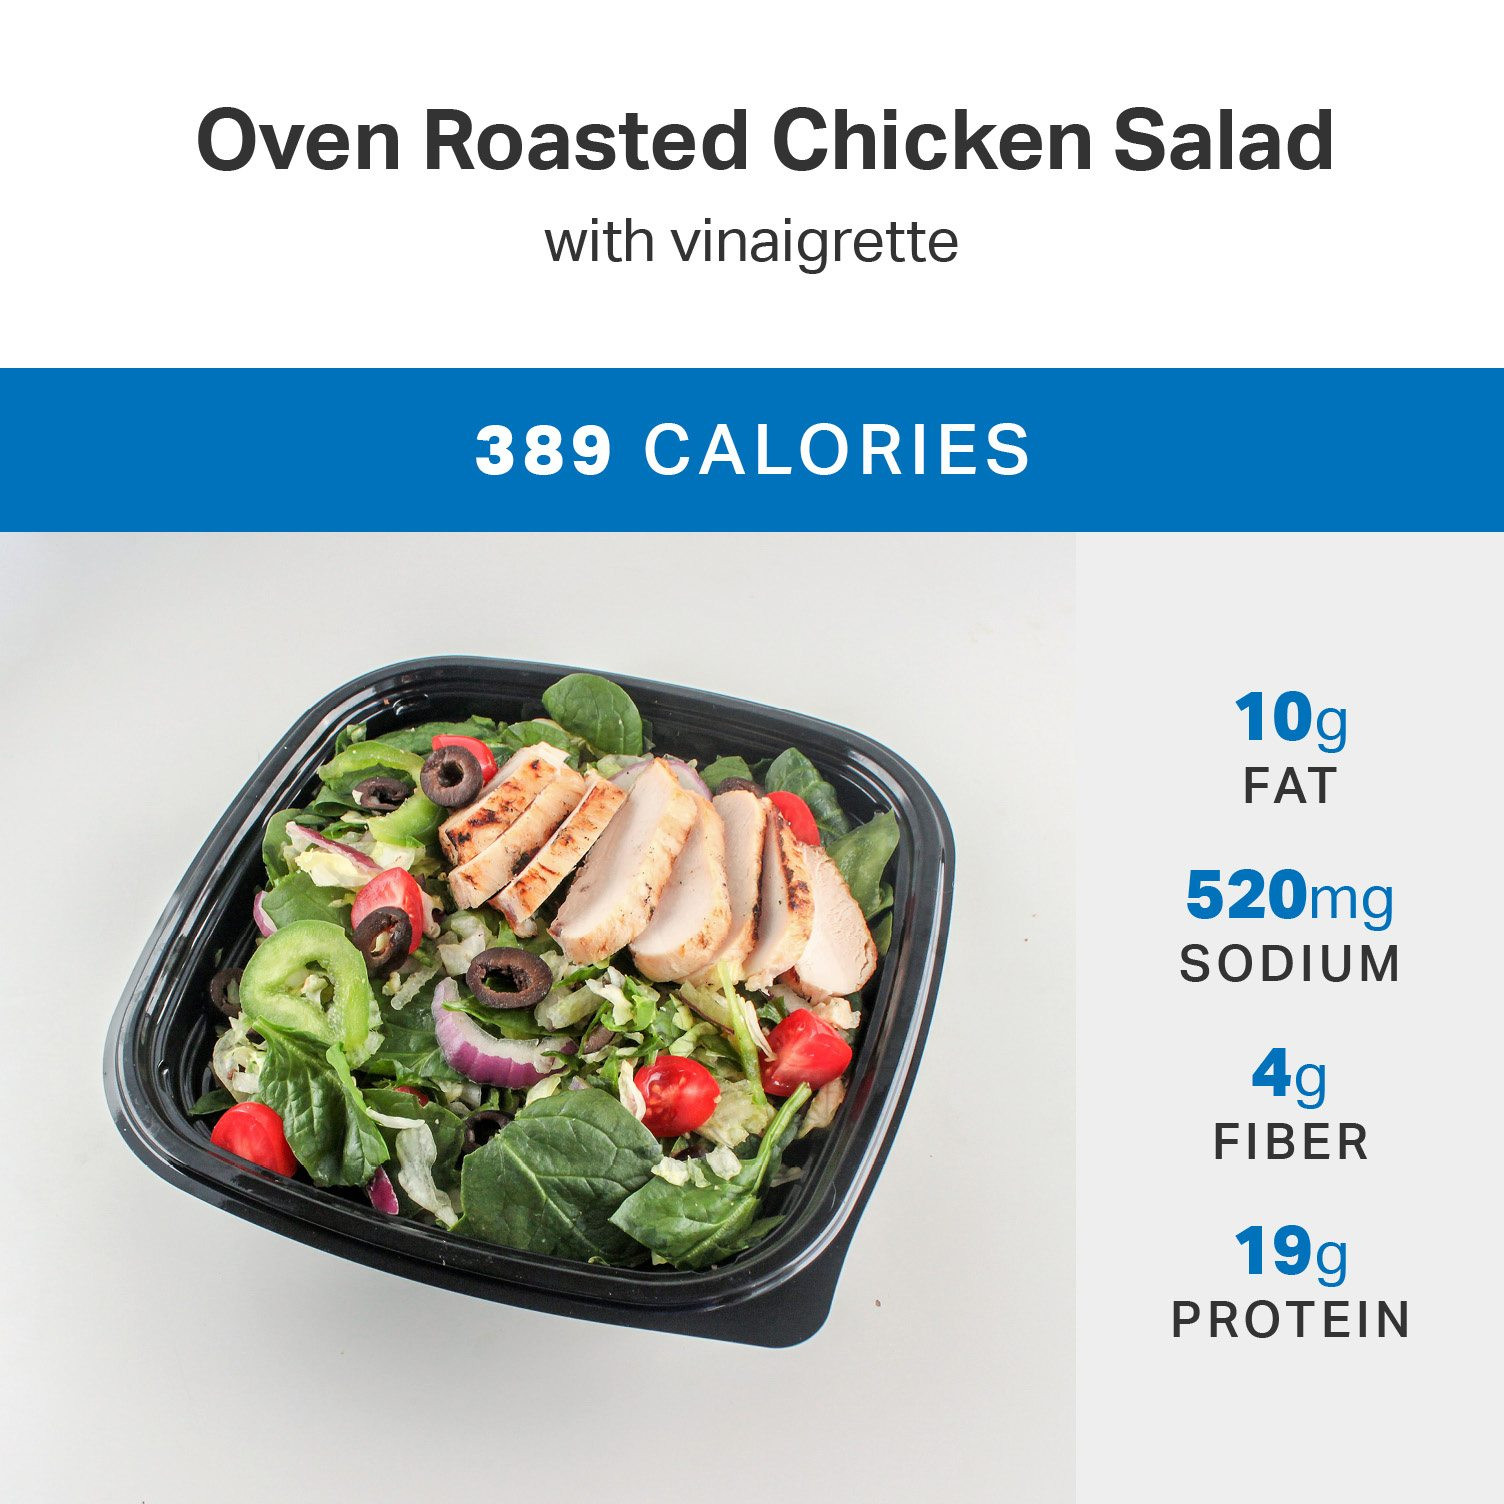 Are Subway Salads Healthy  Healthy Ways to Order at Subway Nutrition